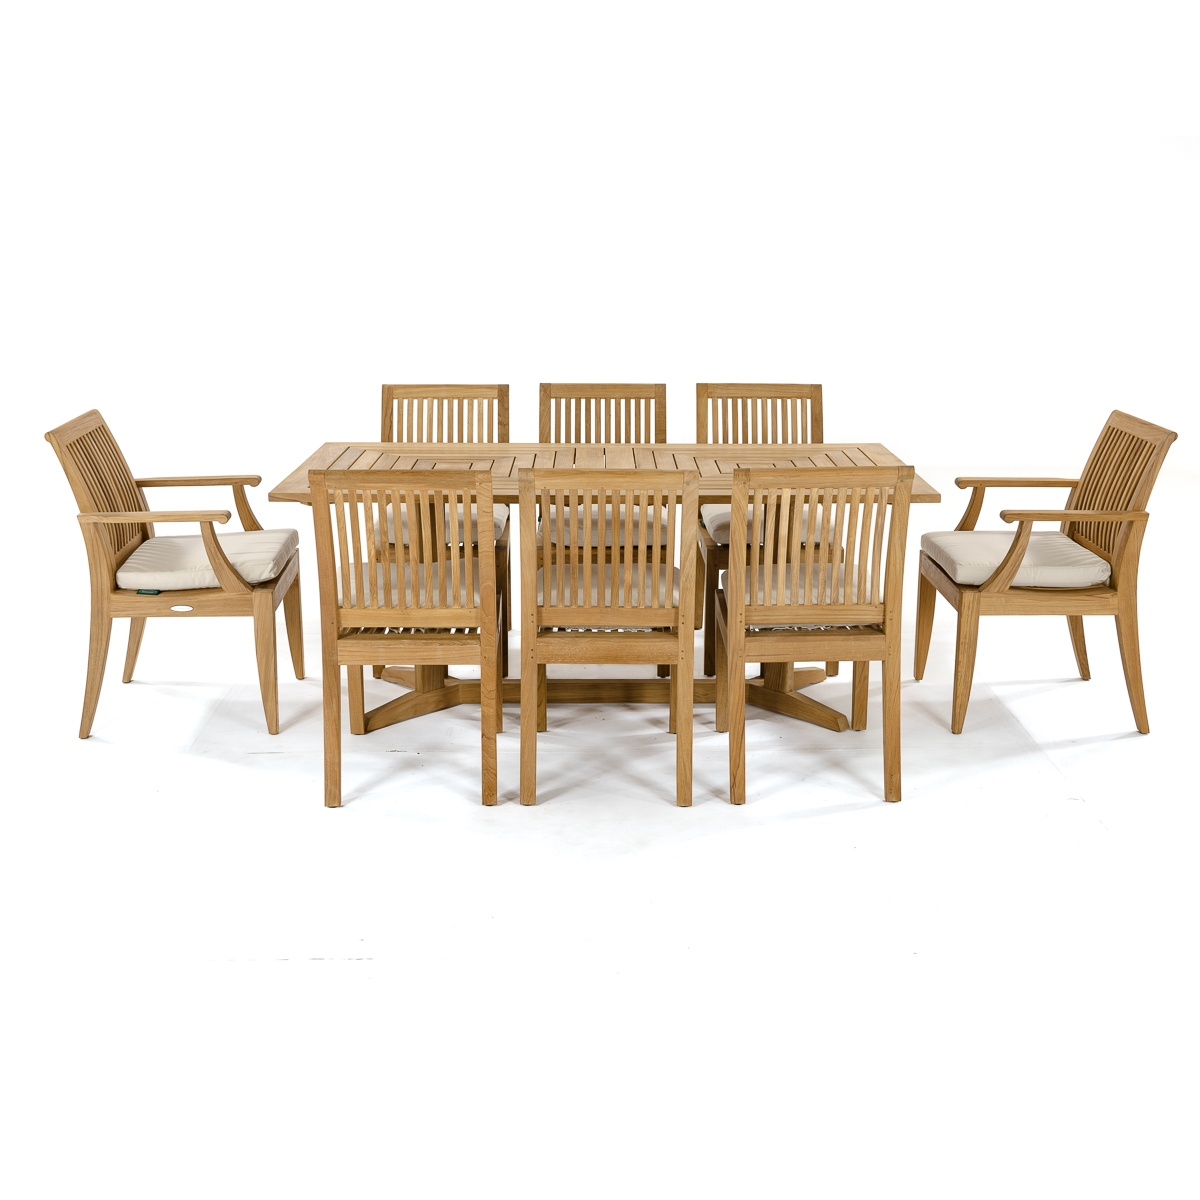 Yacht Patio Sets Wicker Furniture Dining Free Home